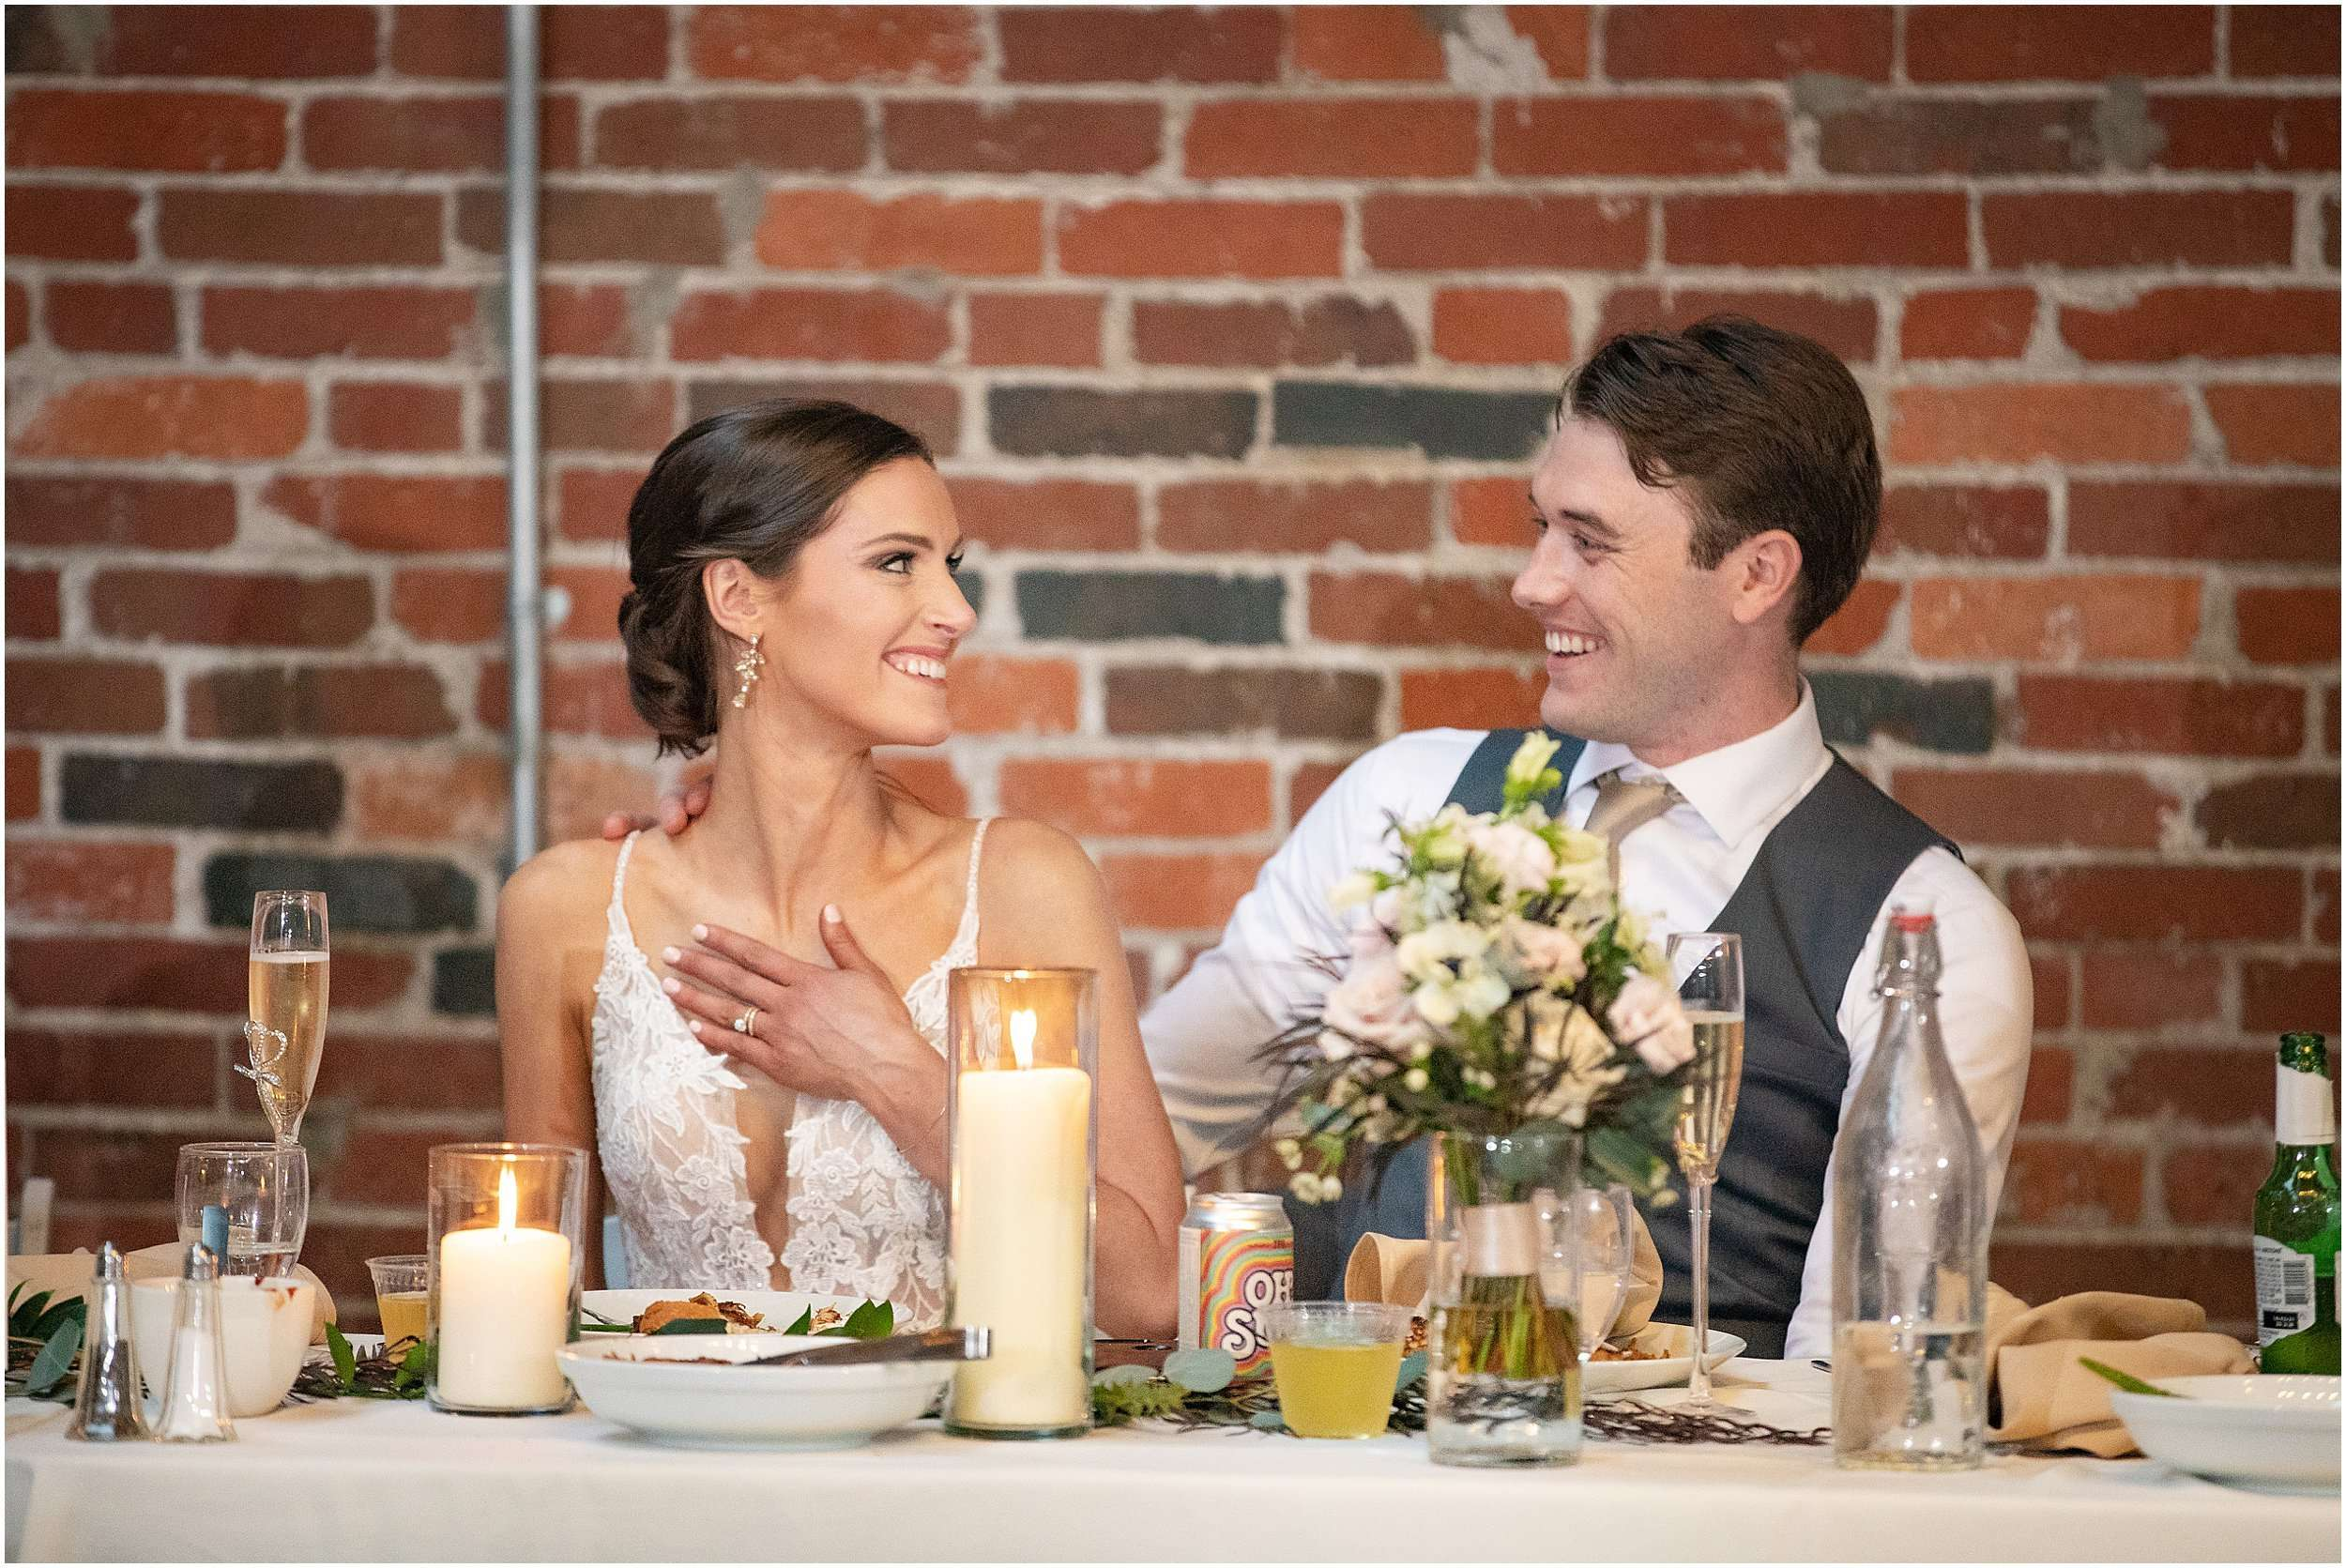 a newly married couple sits at a table full of flowers and candles in front of a brick wall and laughs